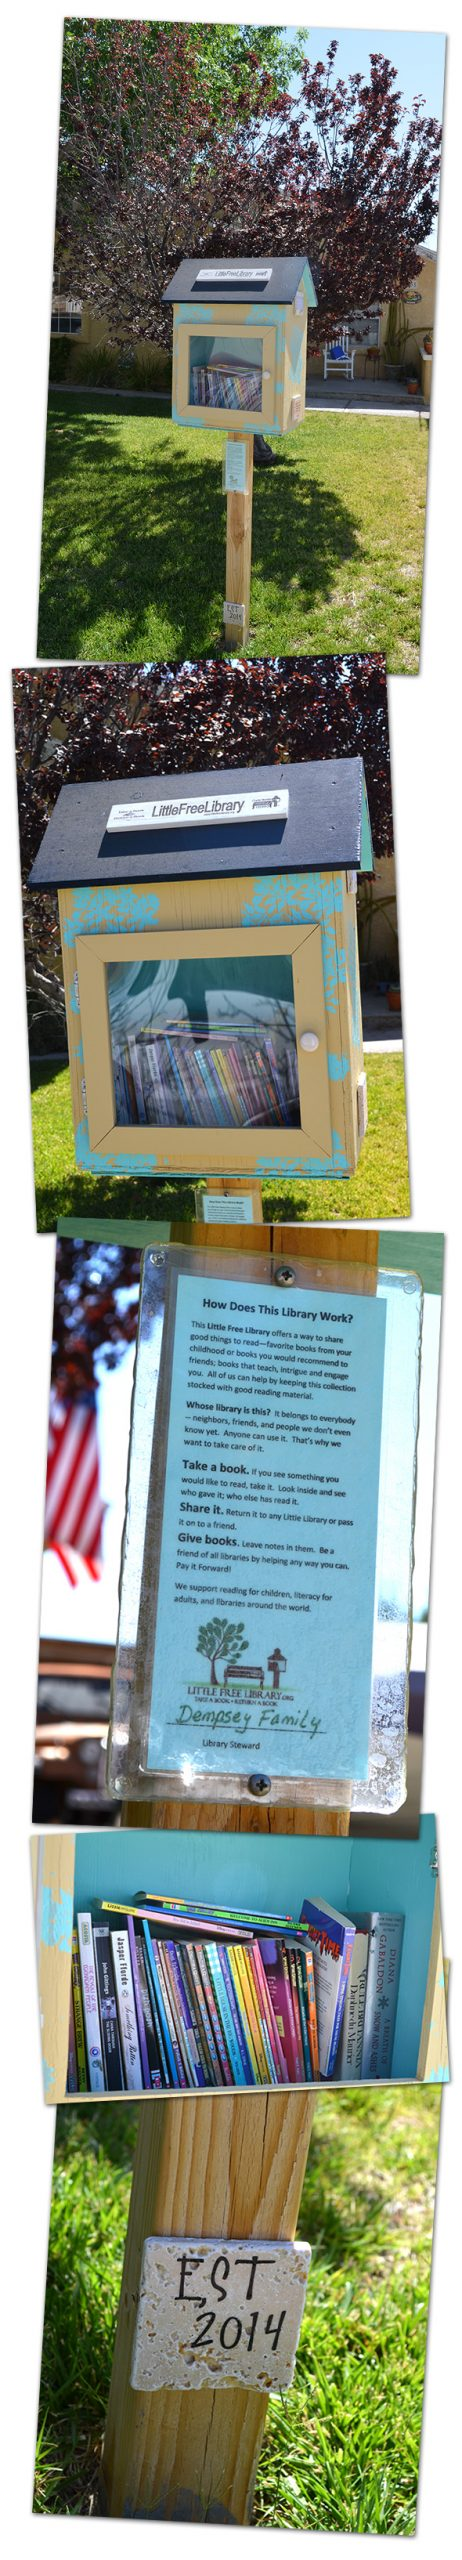 Little Free Library in Boulder City, NV